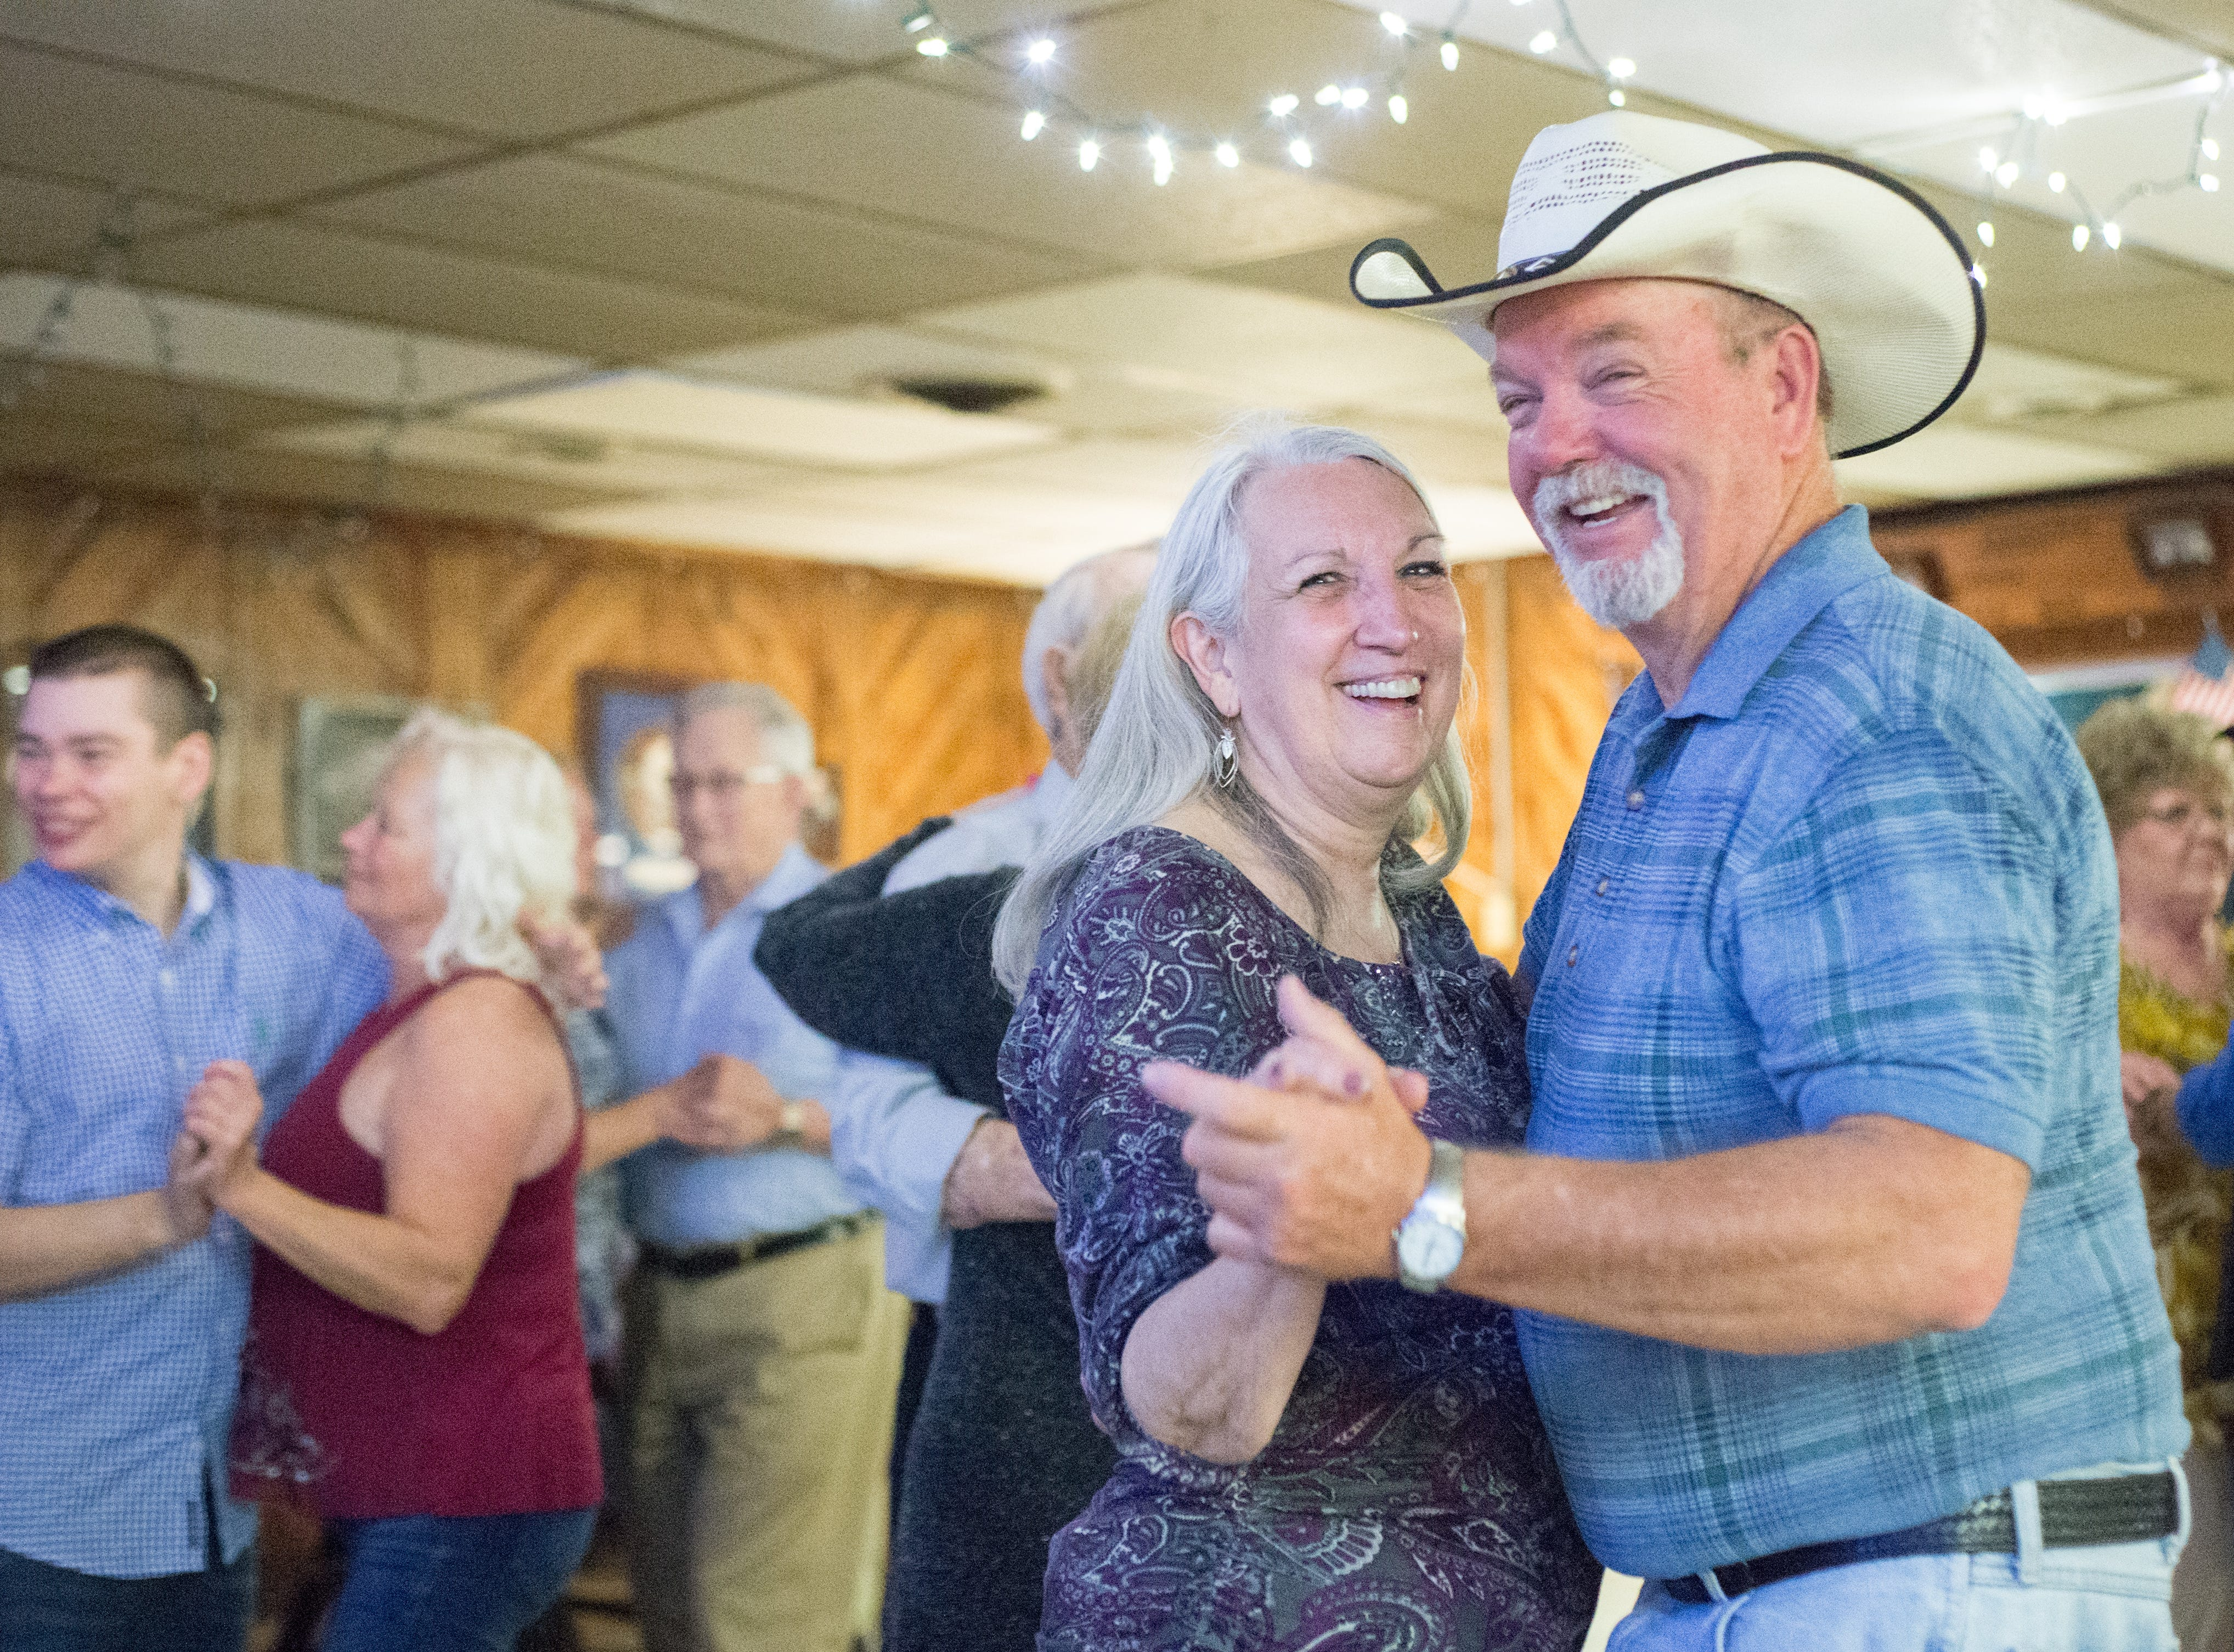 Wanda Proctor and Bobby Gash enjoy a dance during a performance of the Blue Creek Band at Long Hollow Jamboree in Goodlettsville on Saturday, April 7.